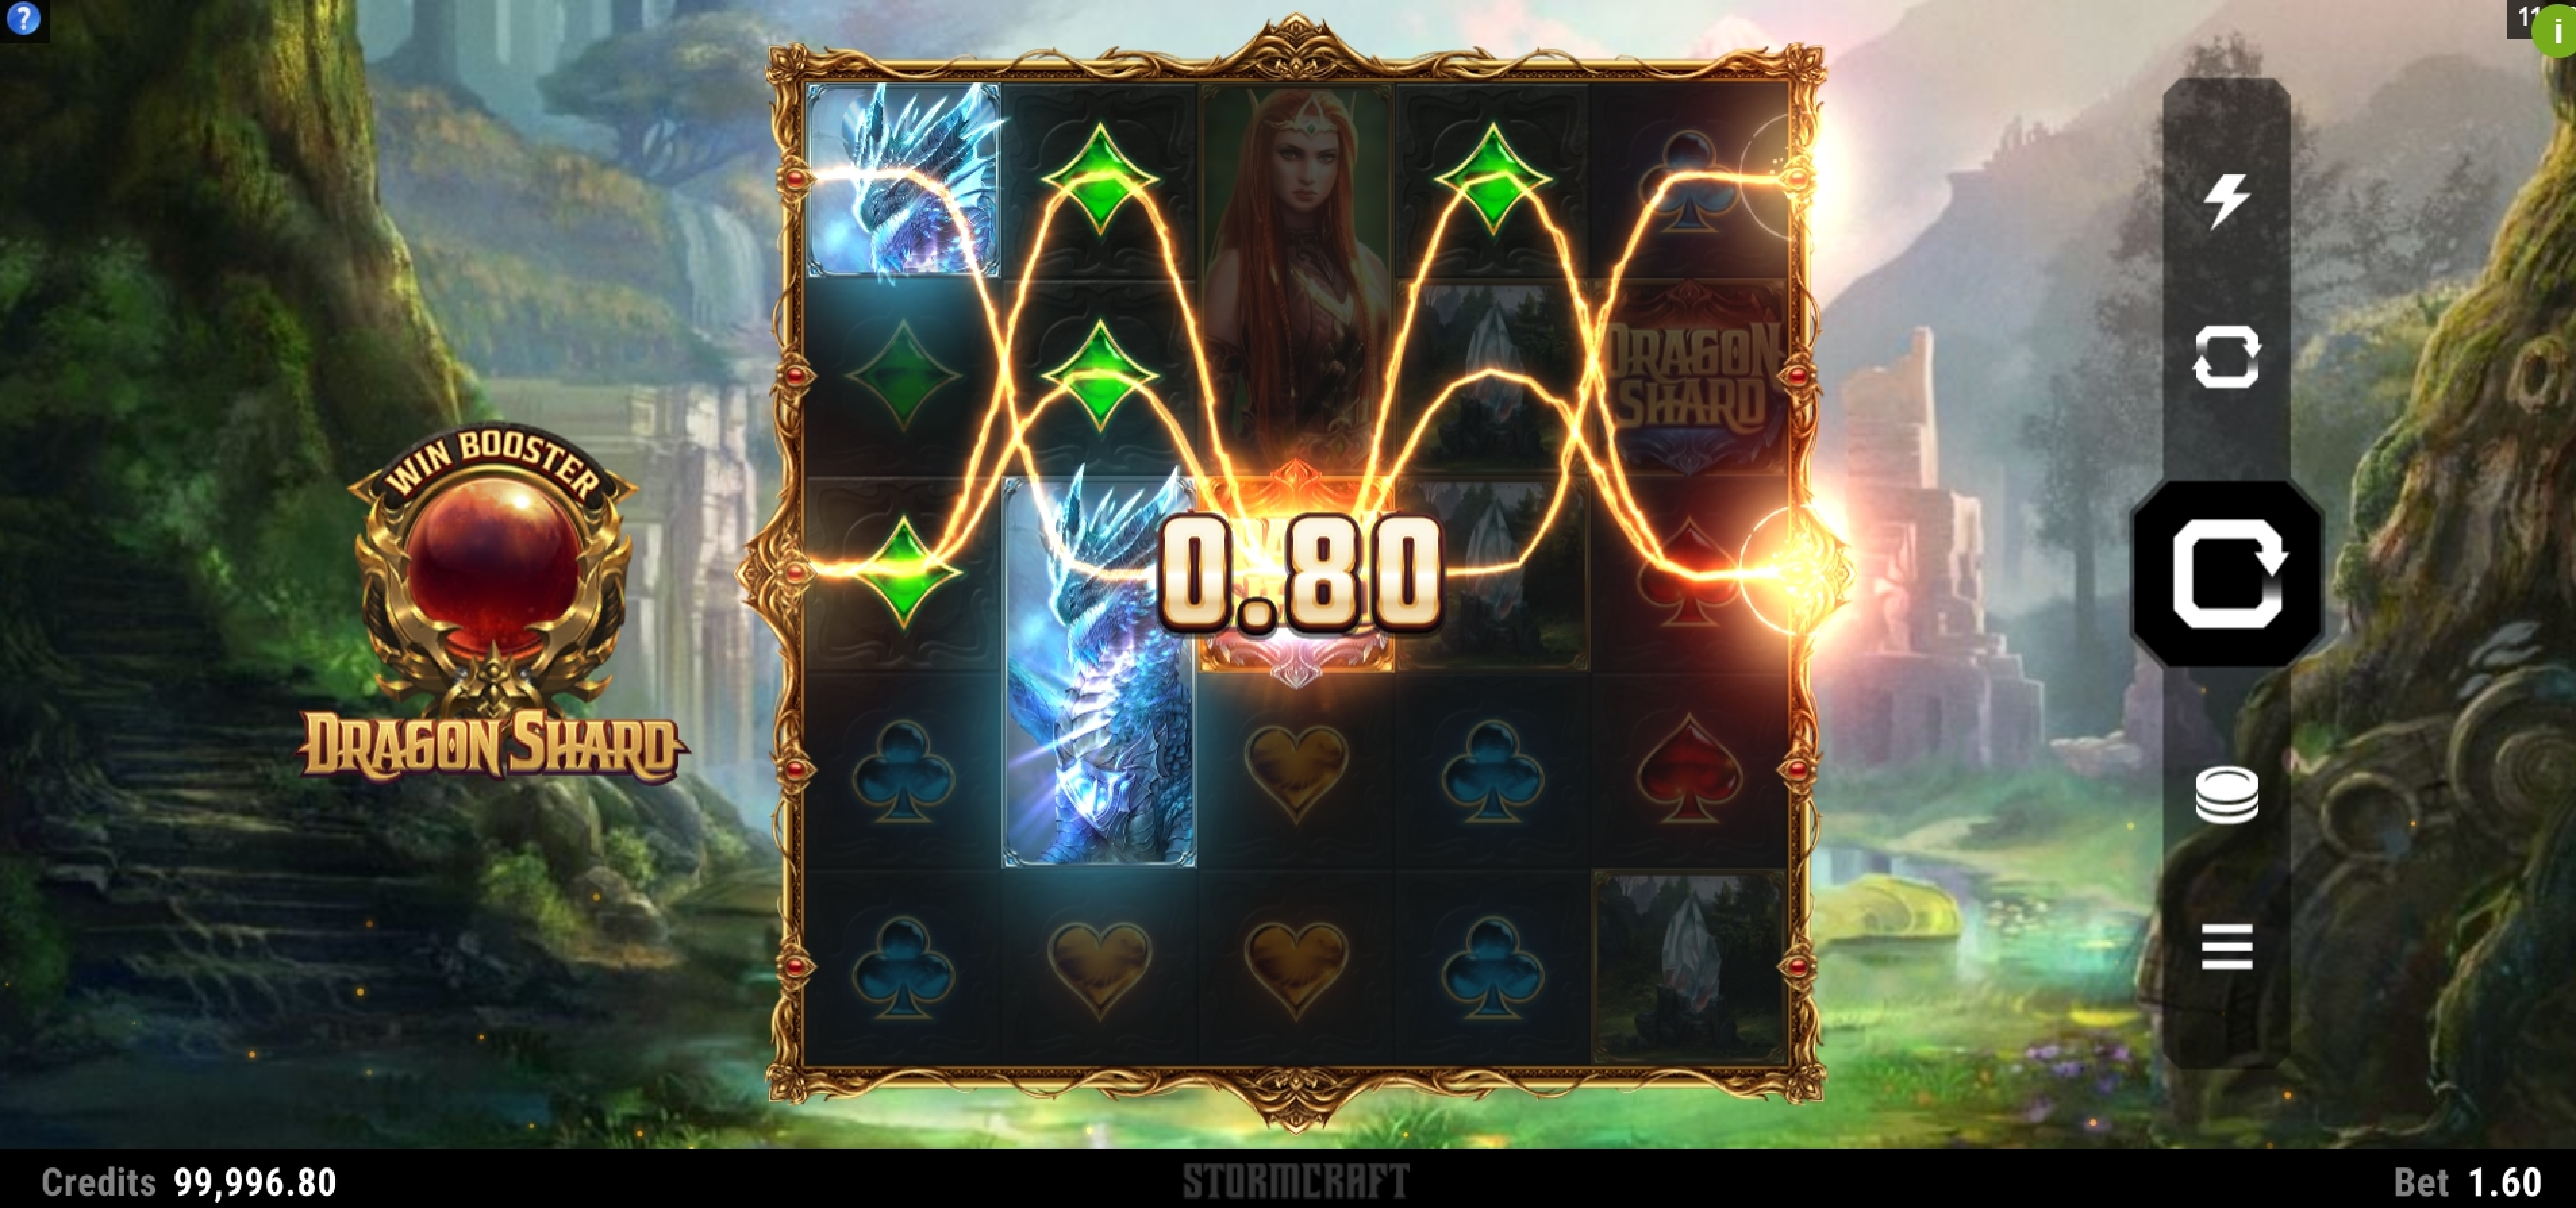 Win Money in Dragon Shard Free Slot Game by Stormcraft Studios